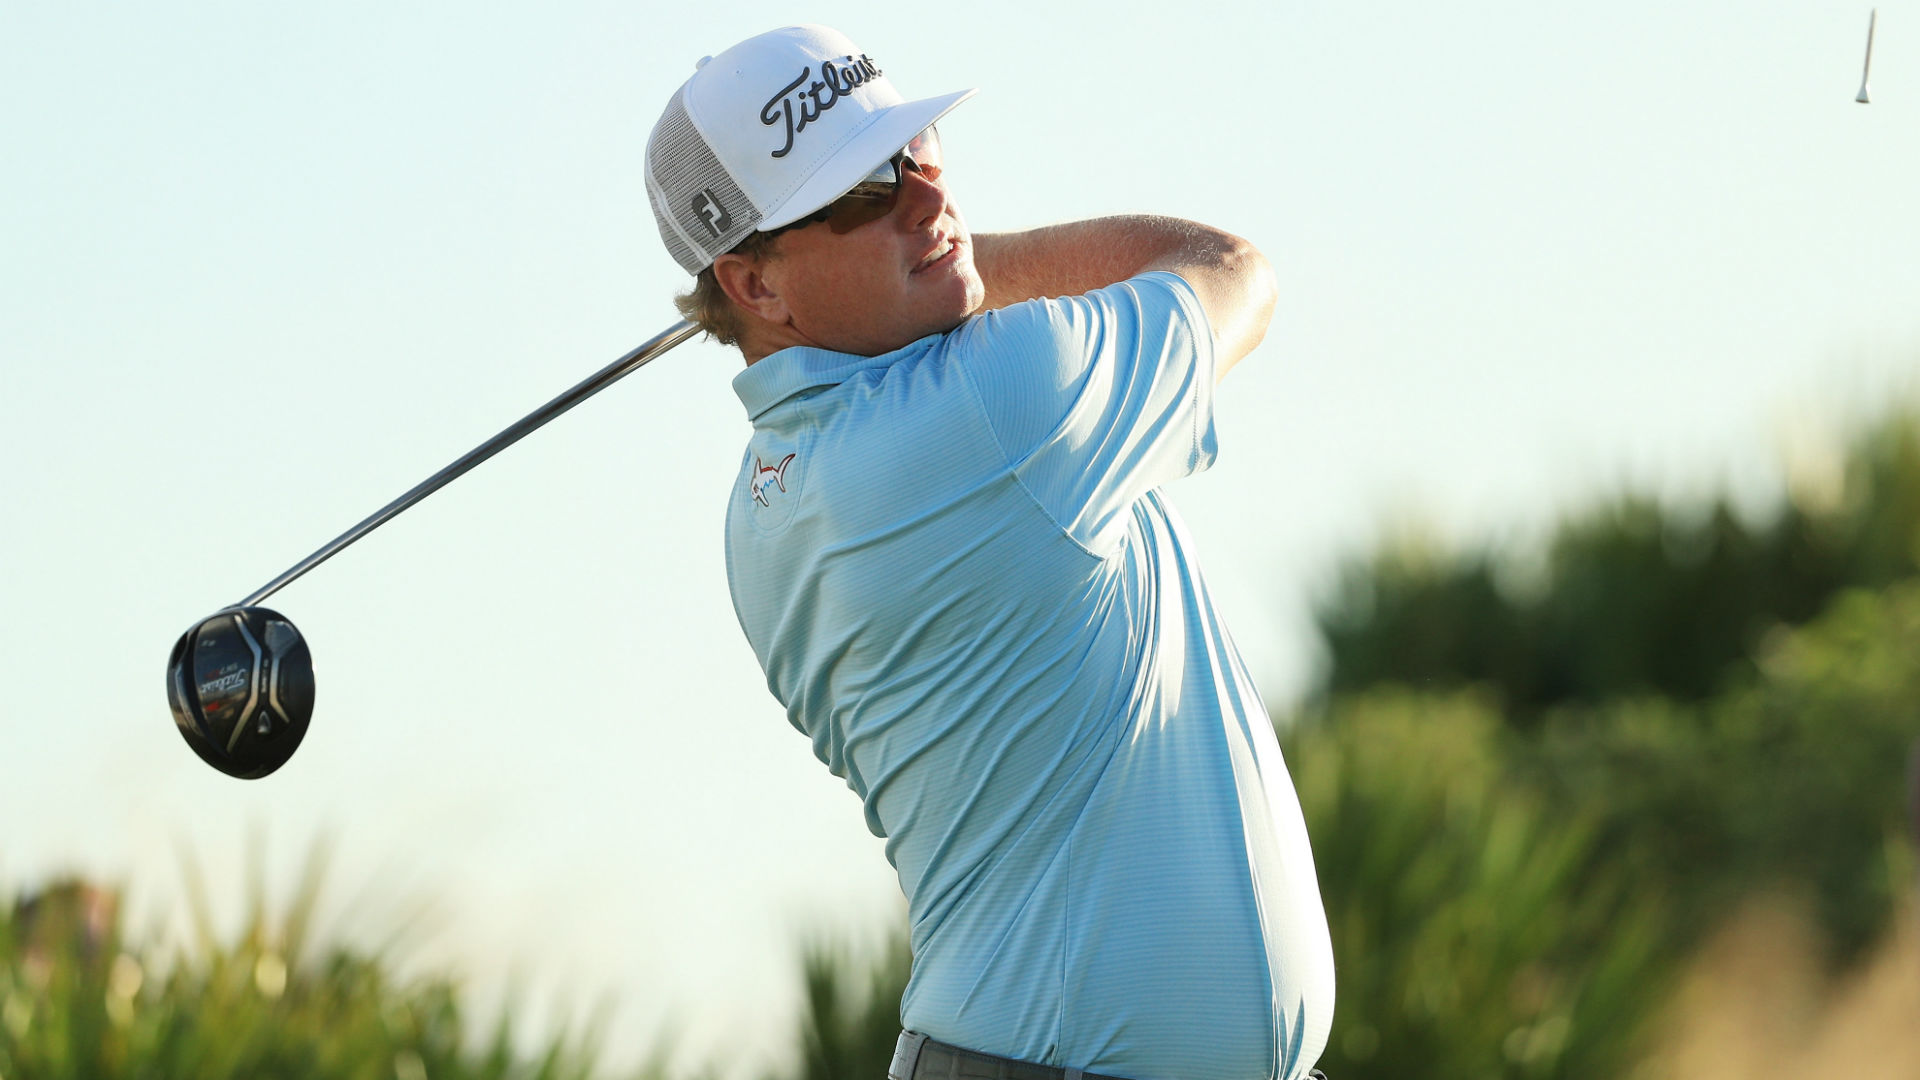 Hero World Challenge: Charley Hoffman extends lead; Tiger Woods rebounds from poor start